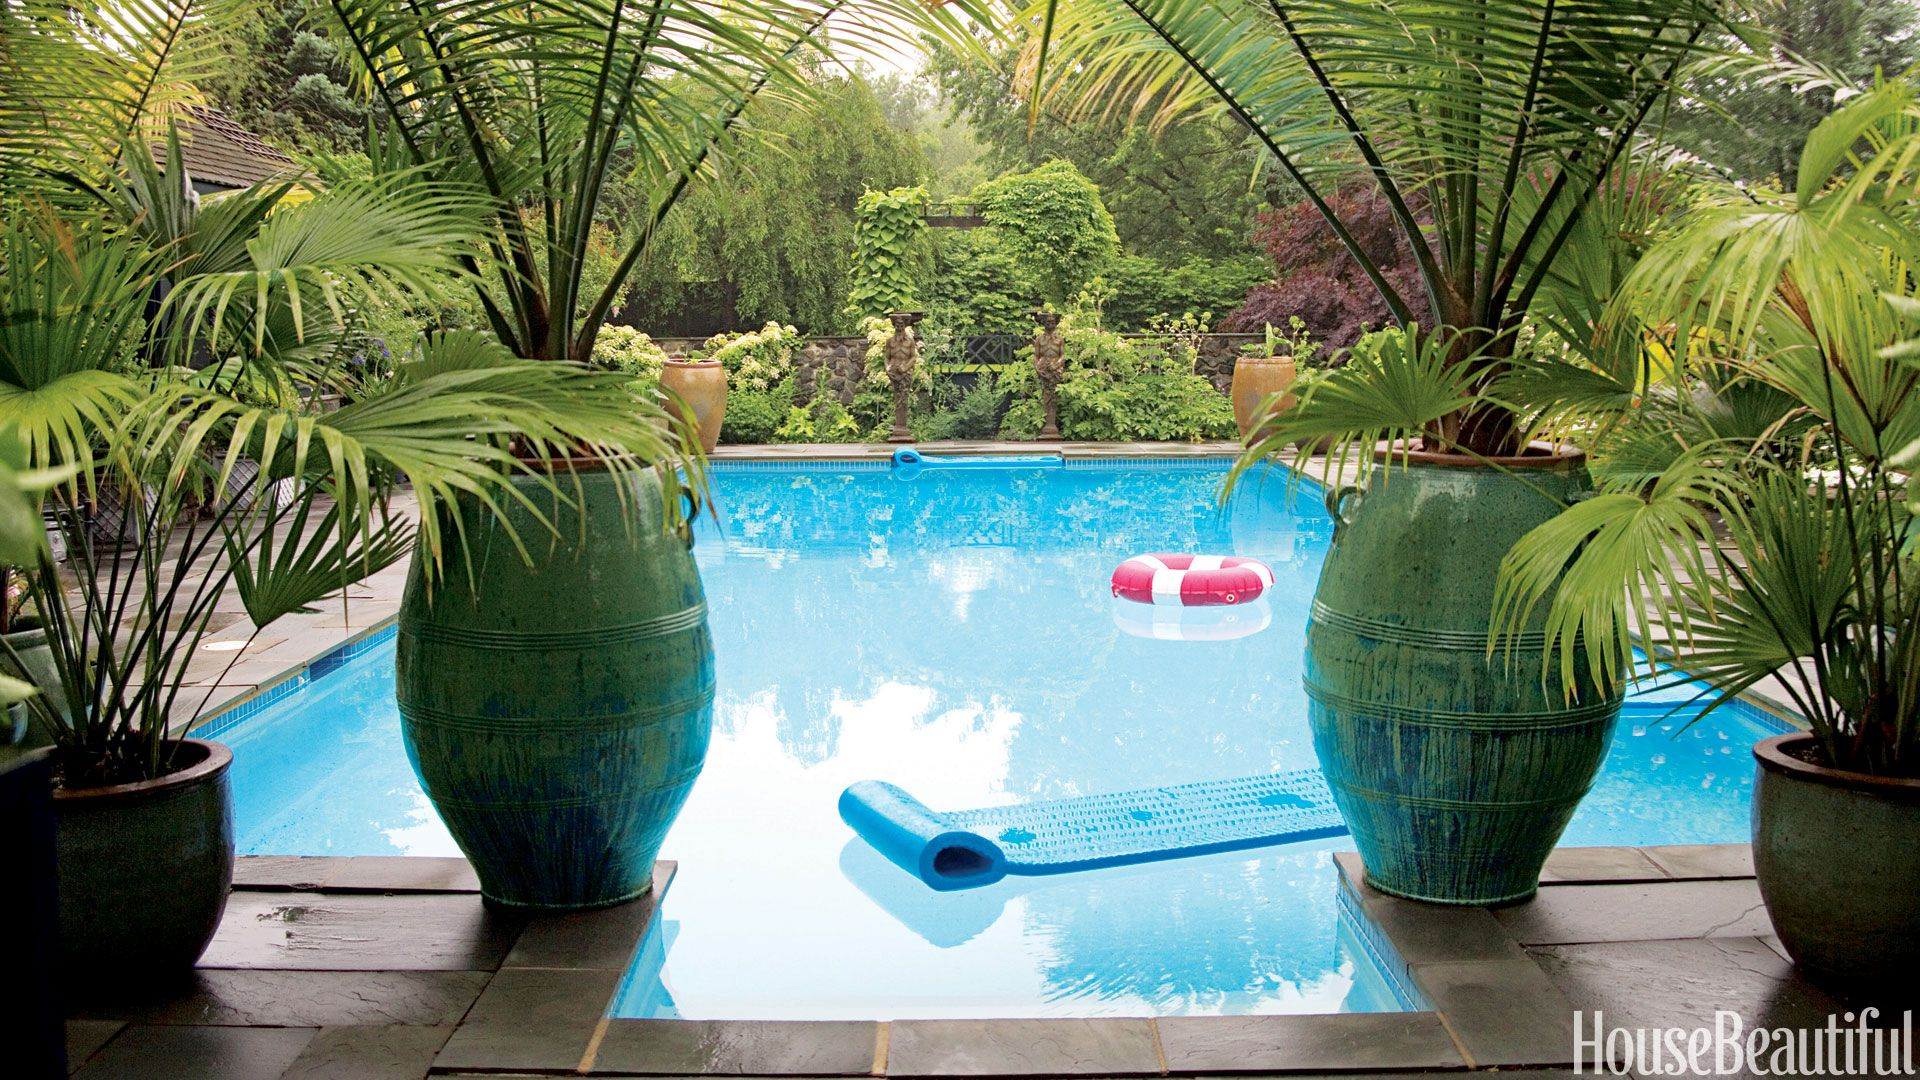 Beautiful Swimming Pool And Potted Plants Outdoor Decor